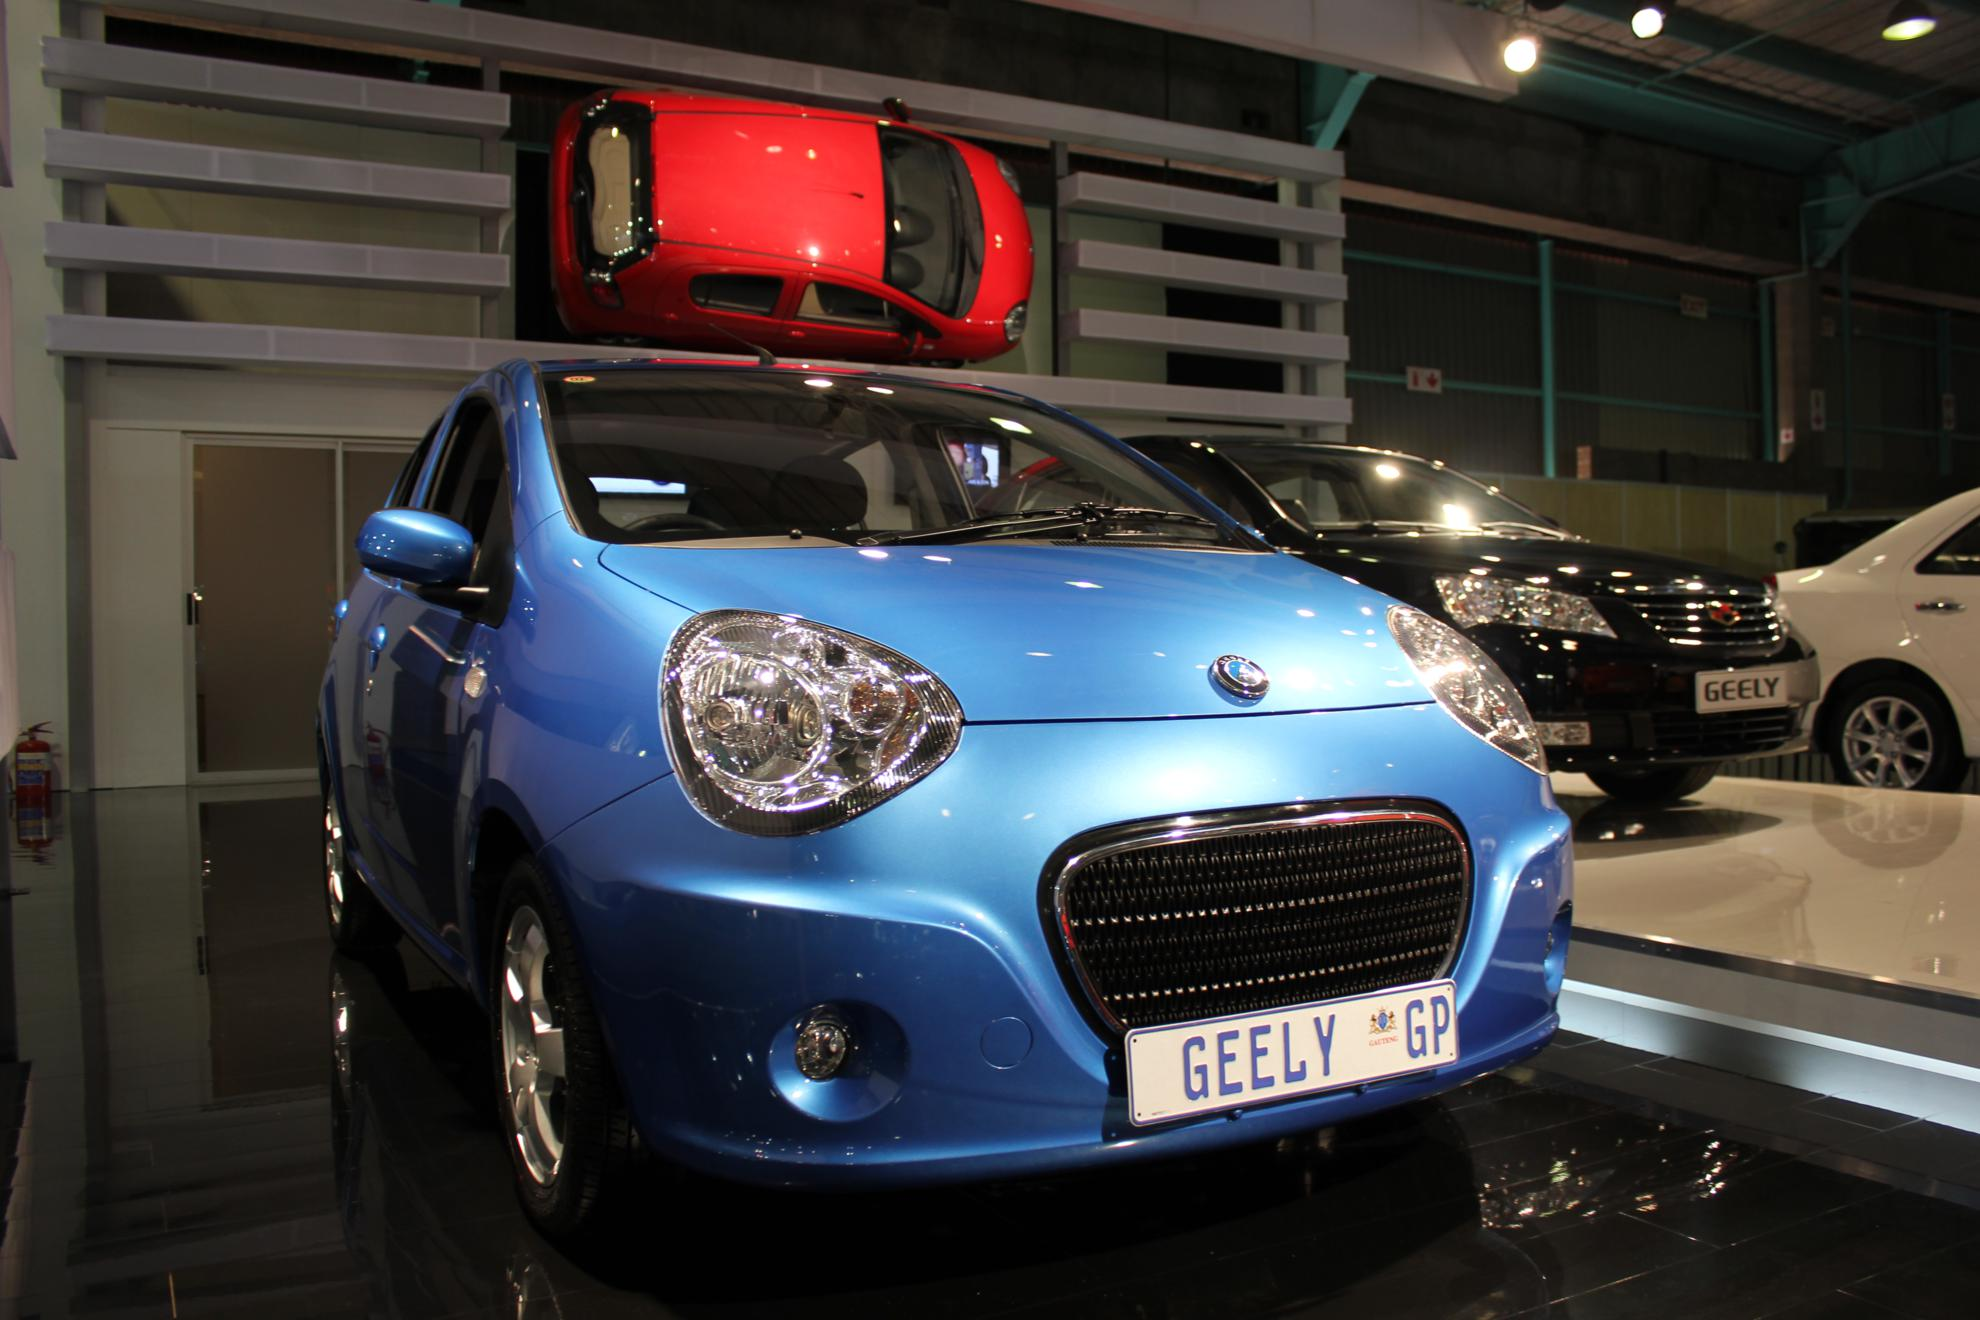 Geely 1.3GT Auto Show